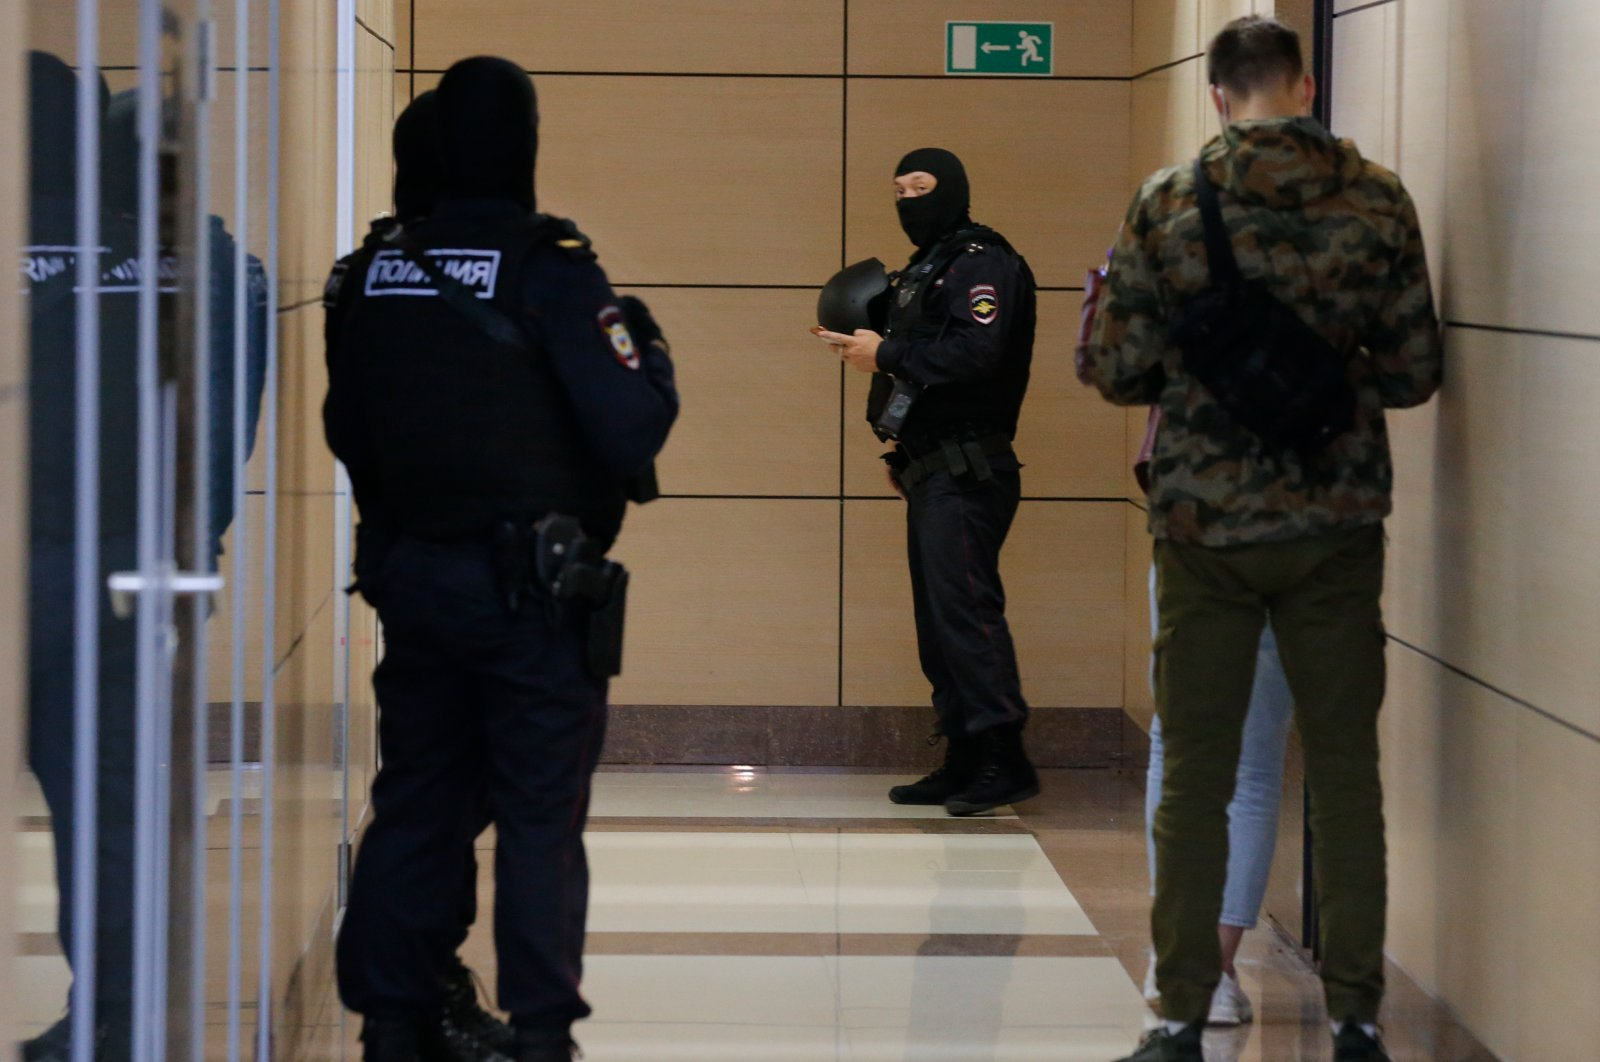 Police raid the offices of Alexei Navalny's Foundation for Fighting Corruption in Moscow, Russia, Friday, July 17, 2020. Opposition leader Navalny sees the move as politically motivated.(AP Photo)